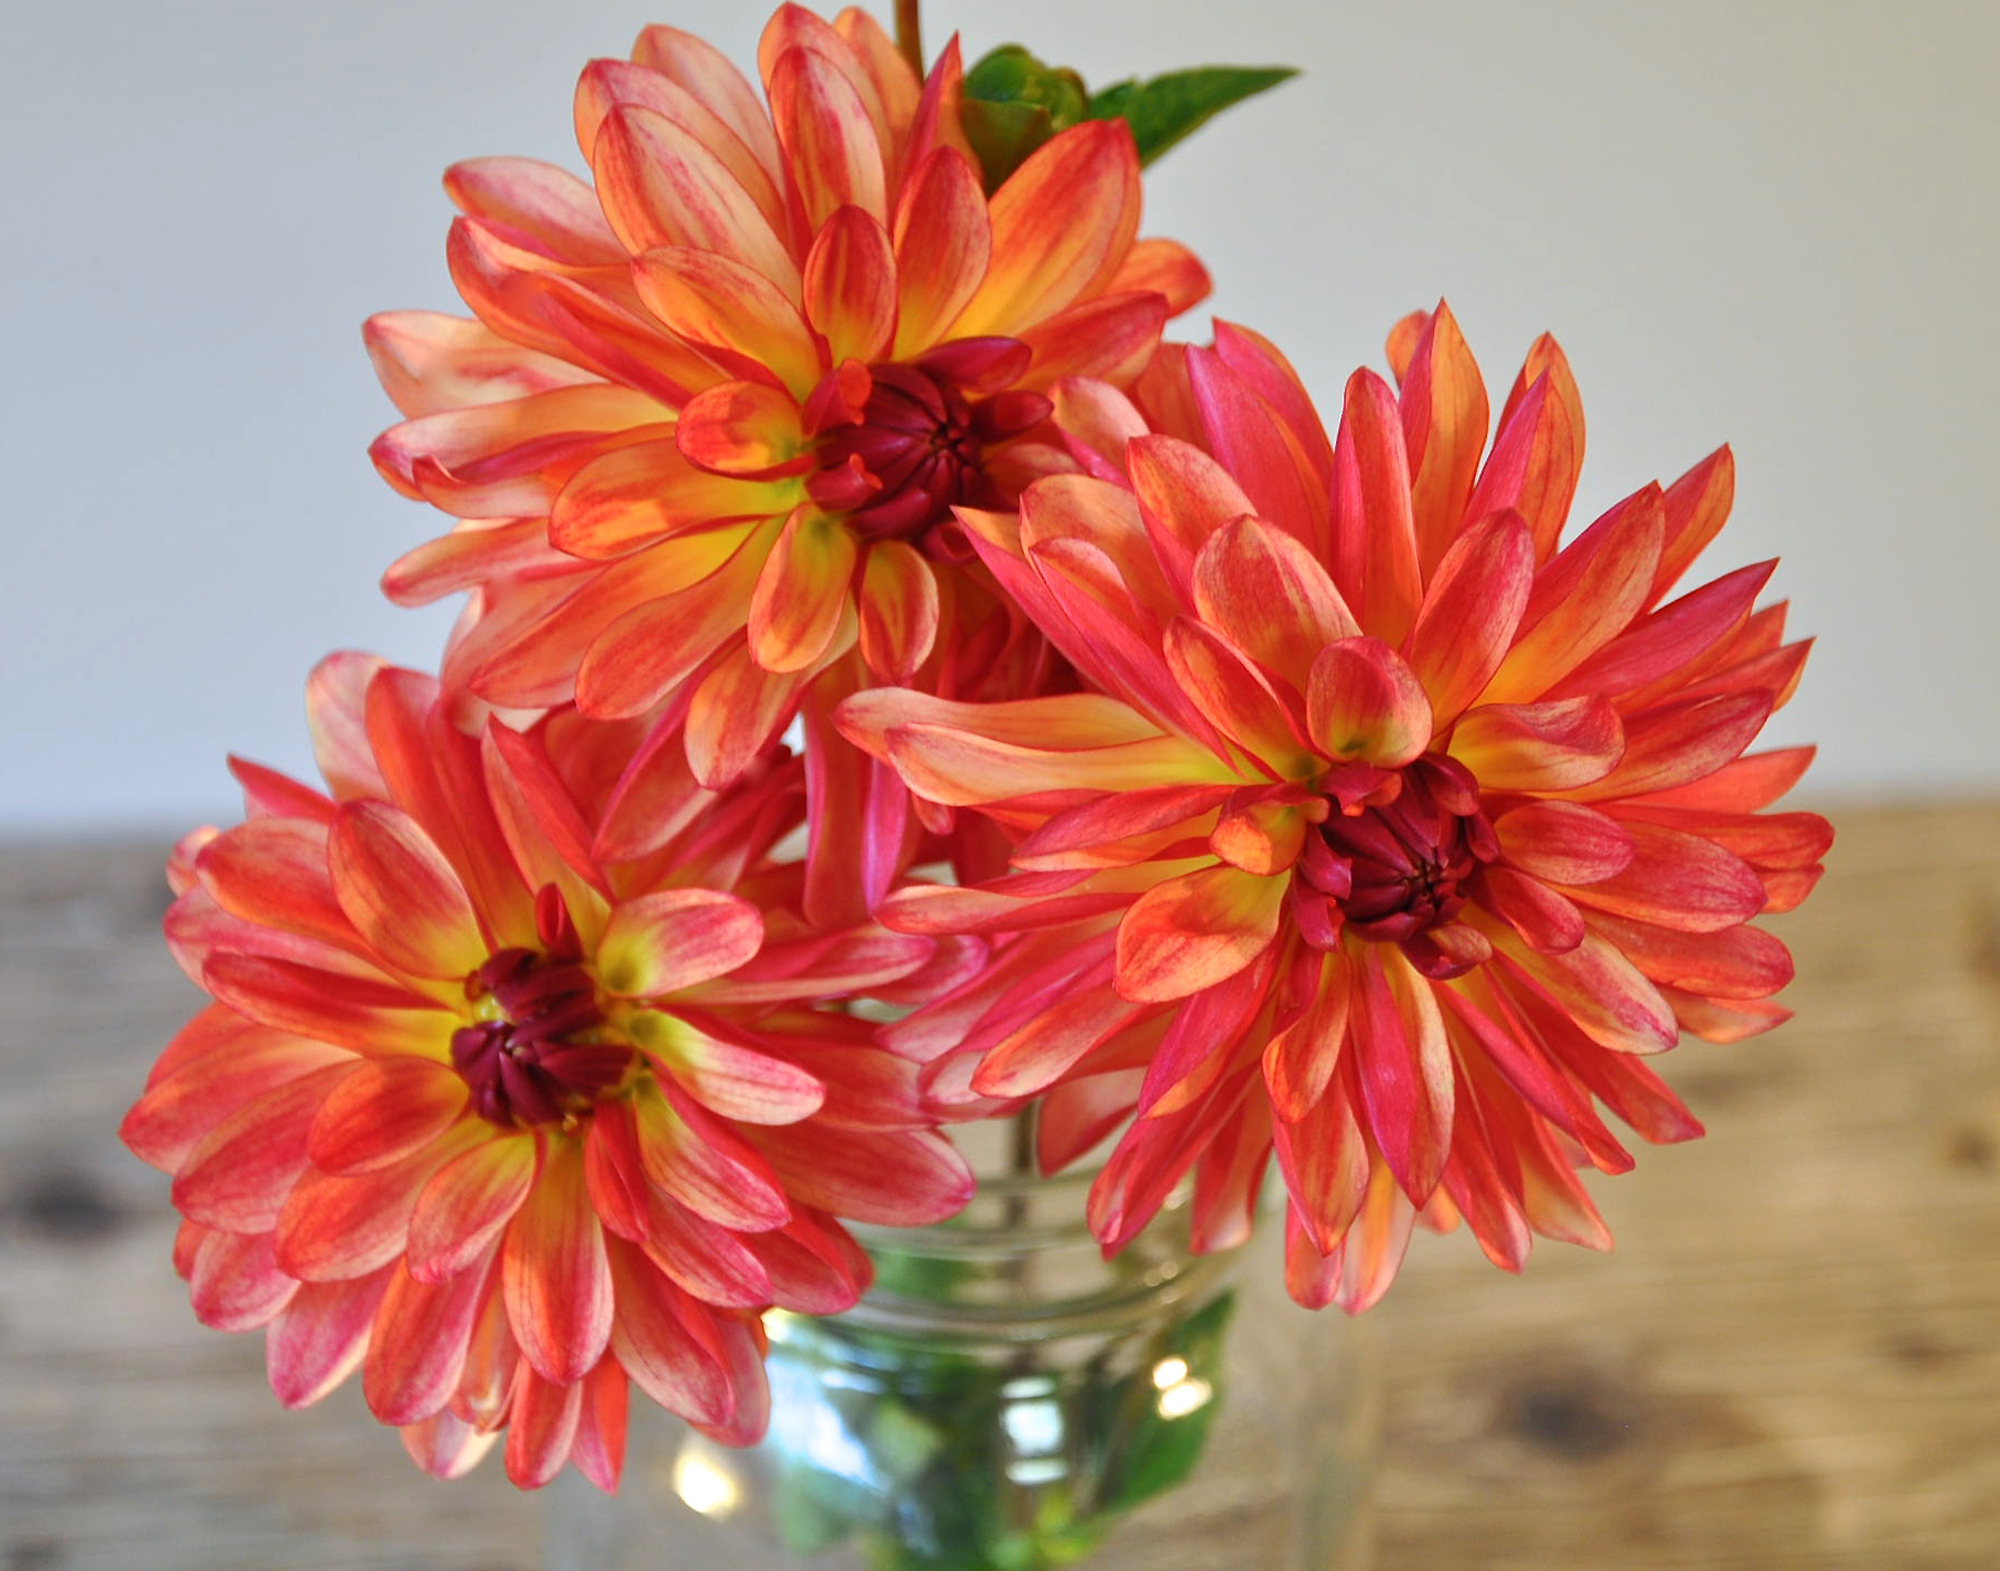 'Fidalgo Julie' is an example of a tested dahlia variety for growing in hot climates